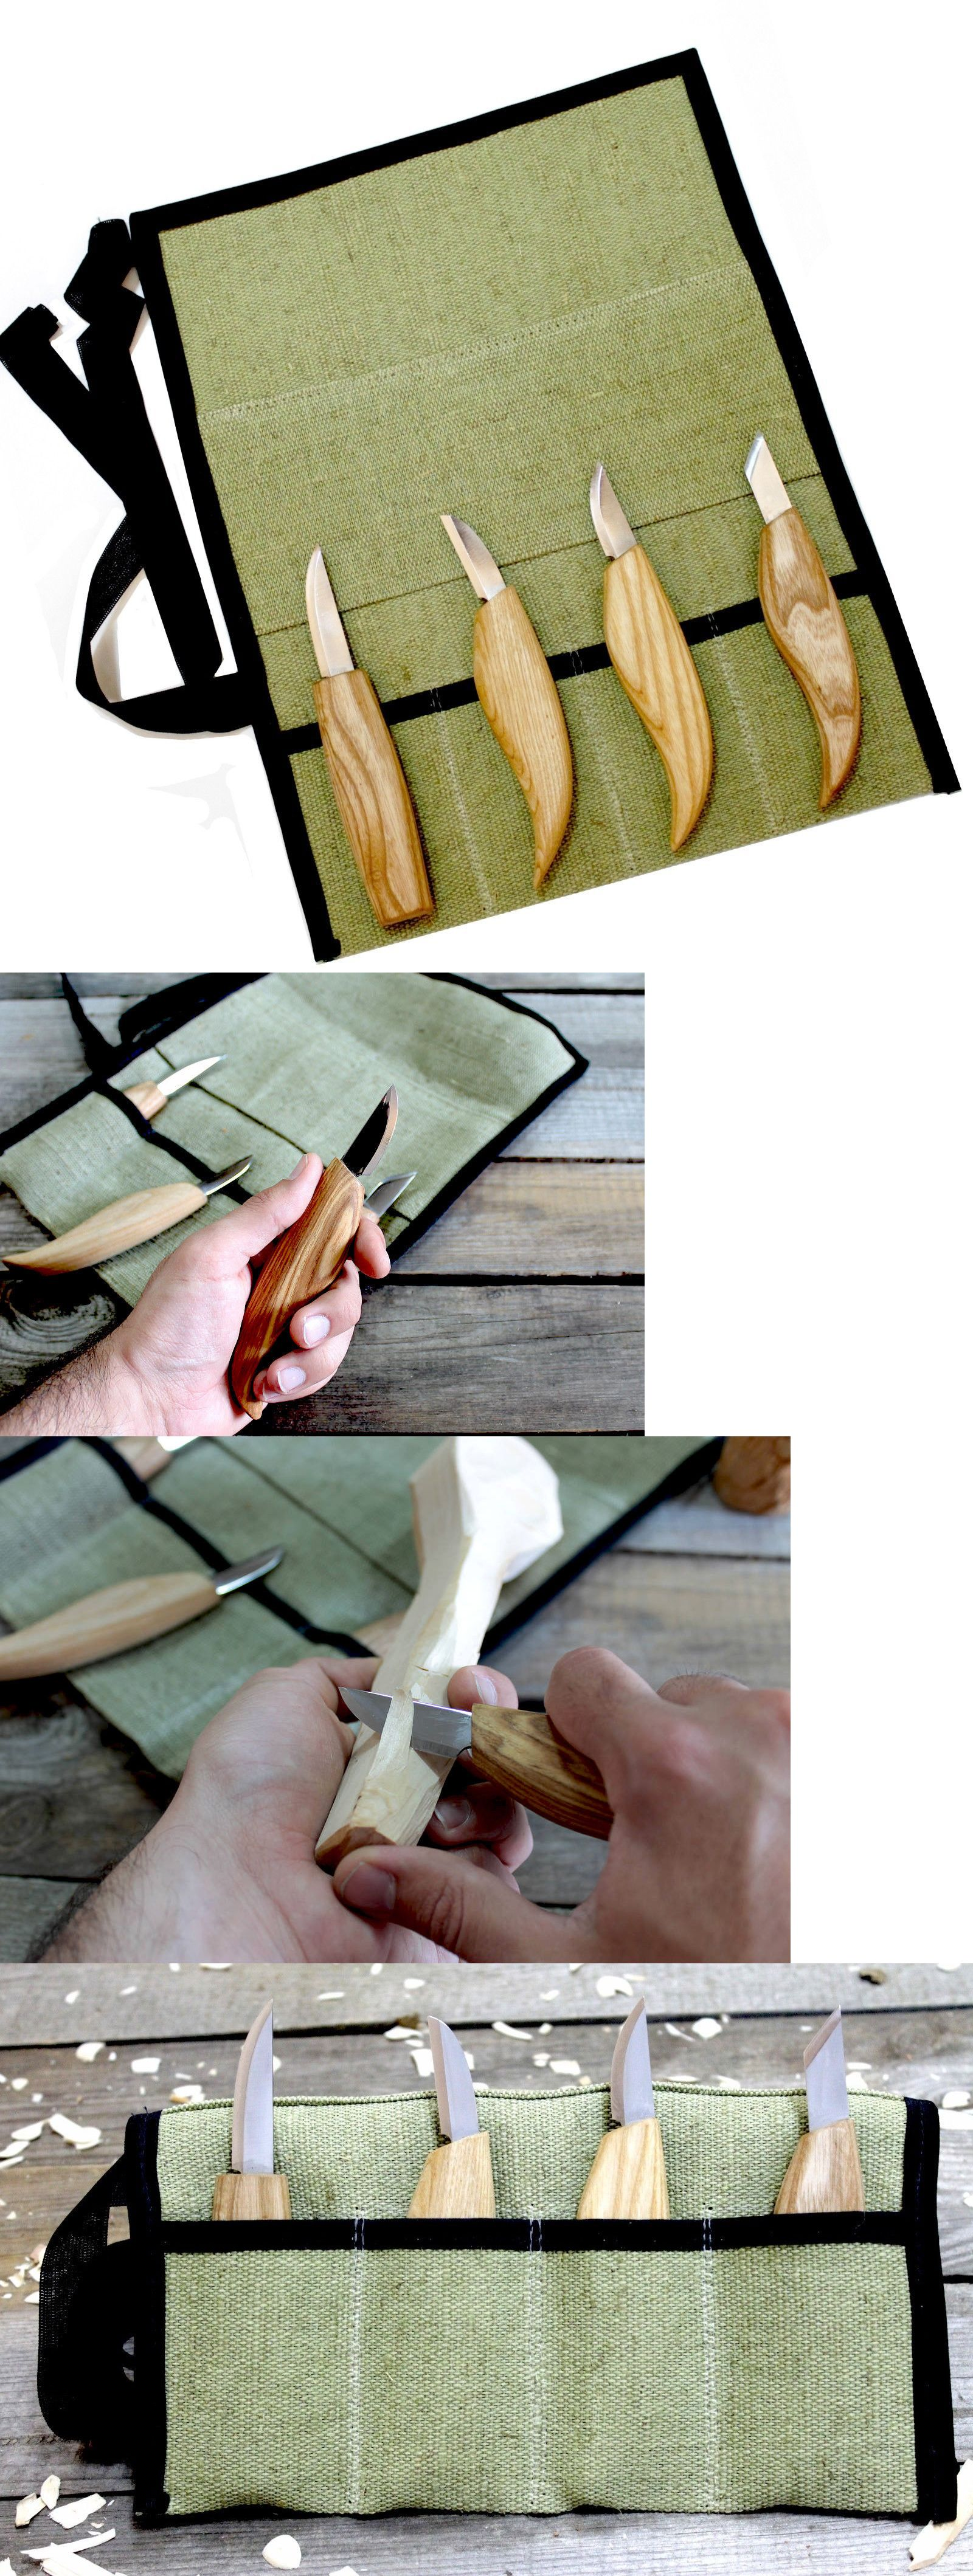 Wood Carving Kits 183153: Wood Carving Tools Set For